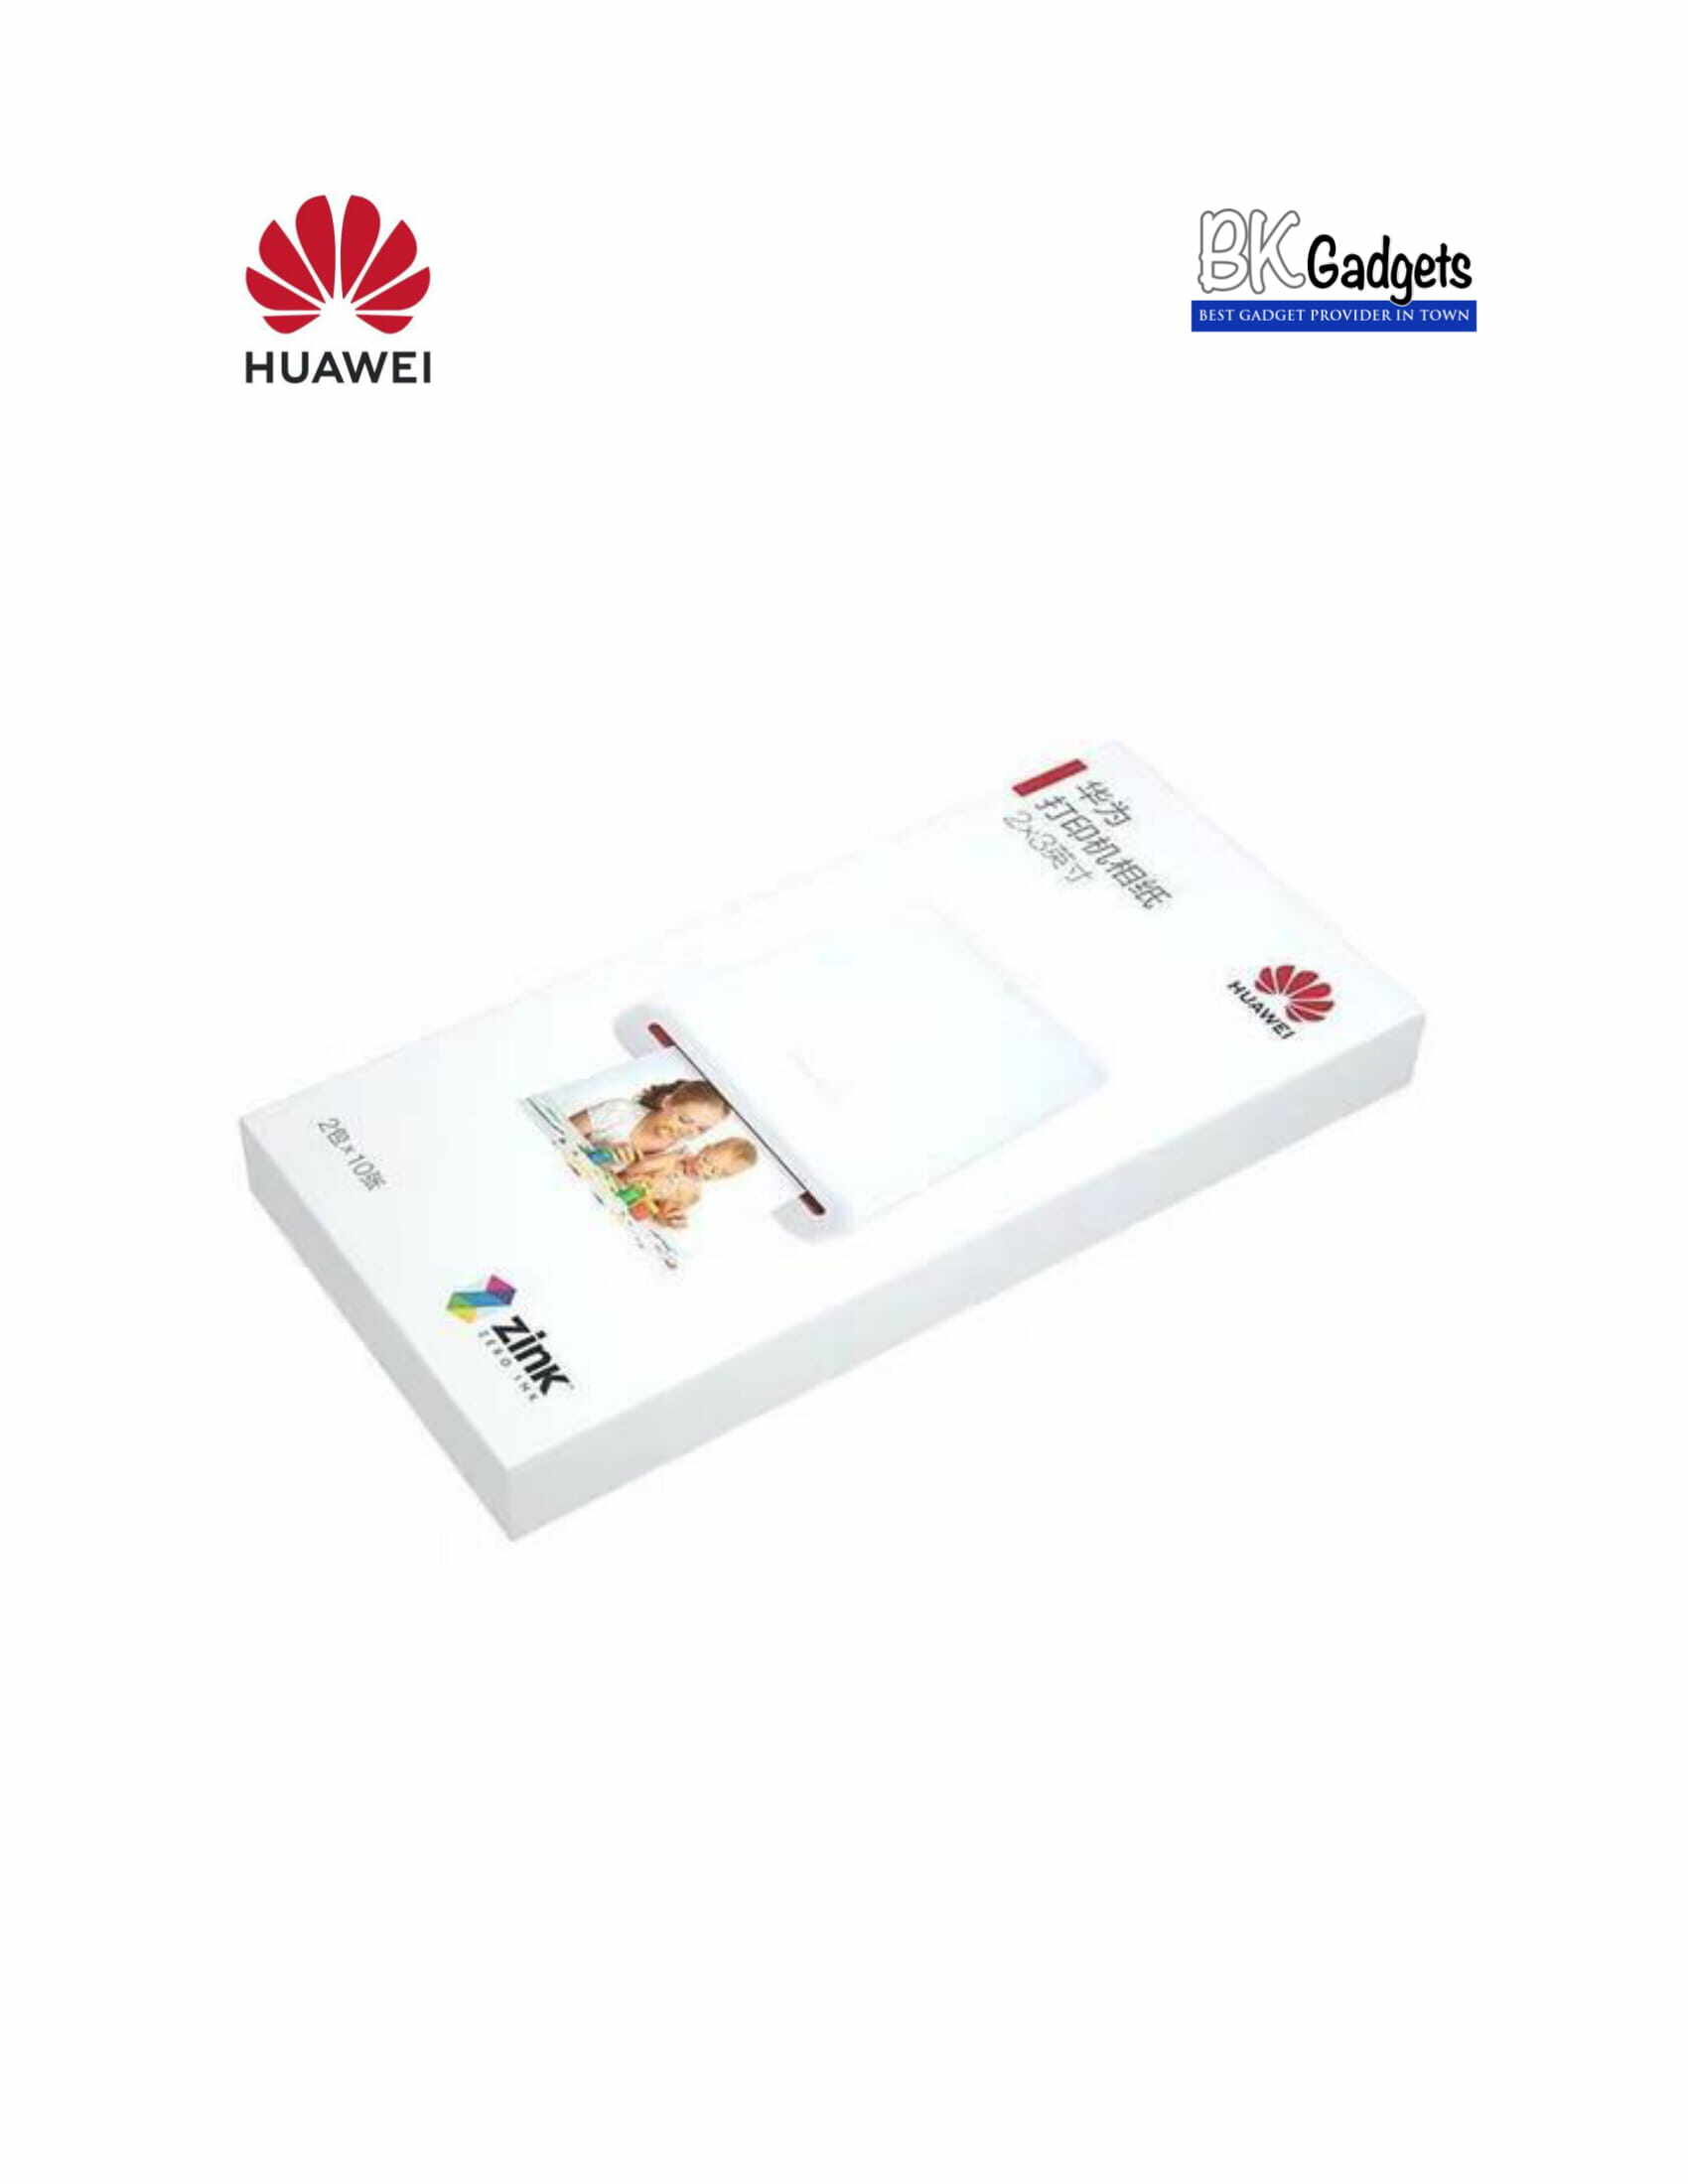 HUAWEI CV80 Smart Pocket Photo Portable Printer Photographic Papers ZINK Inkless